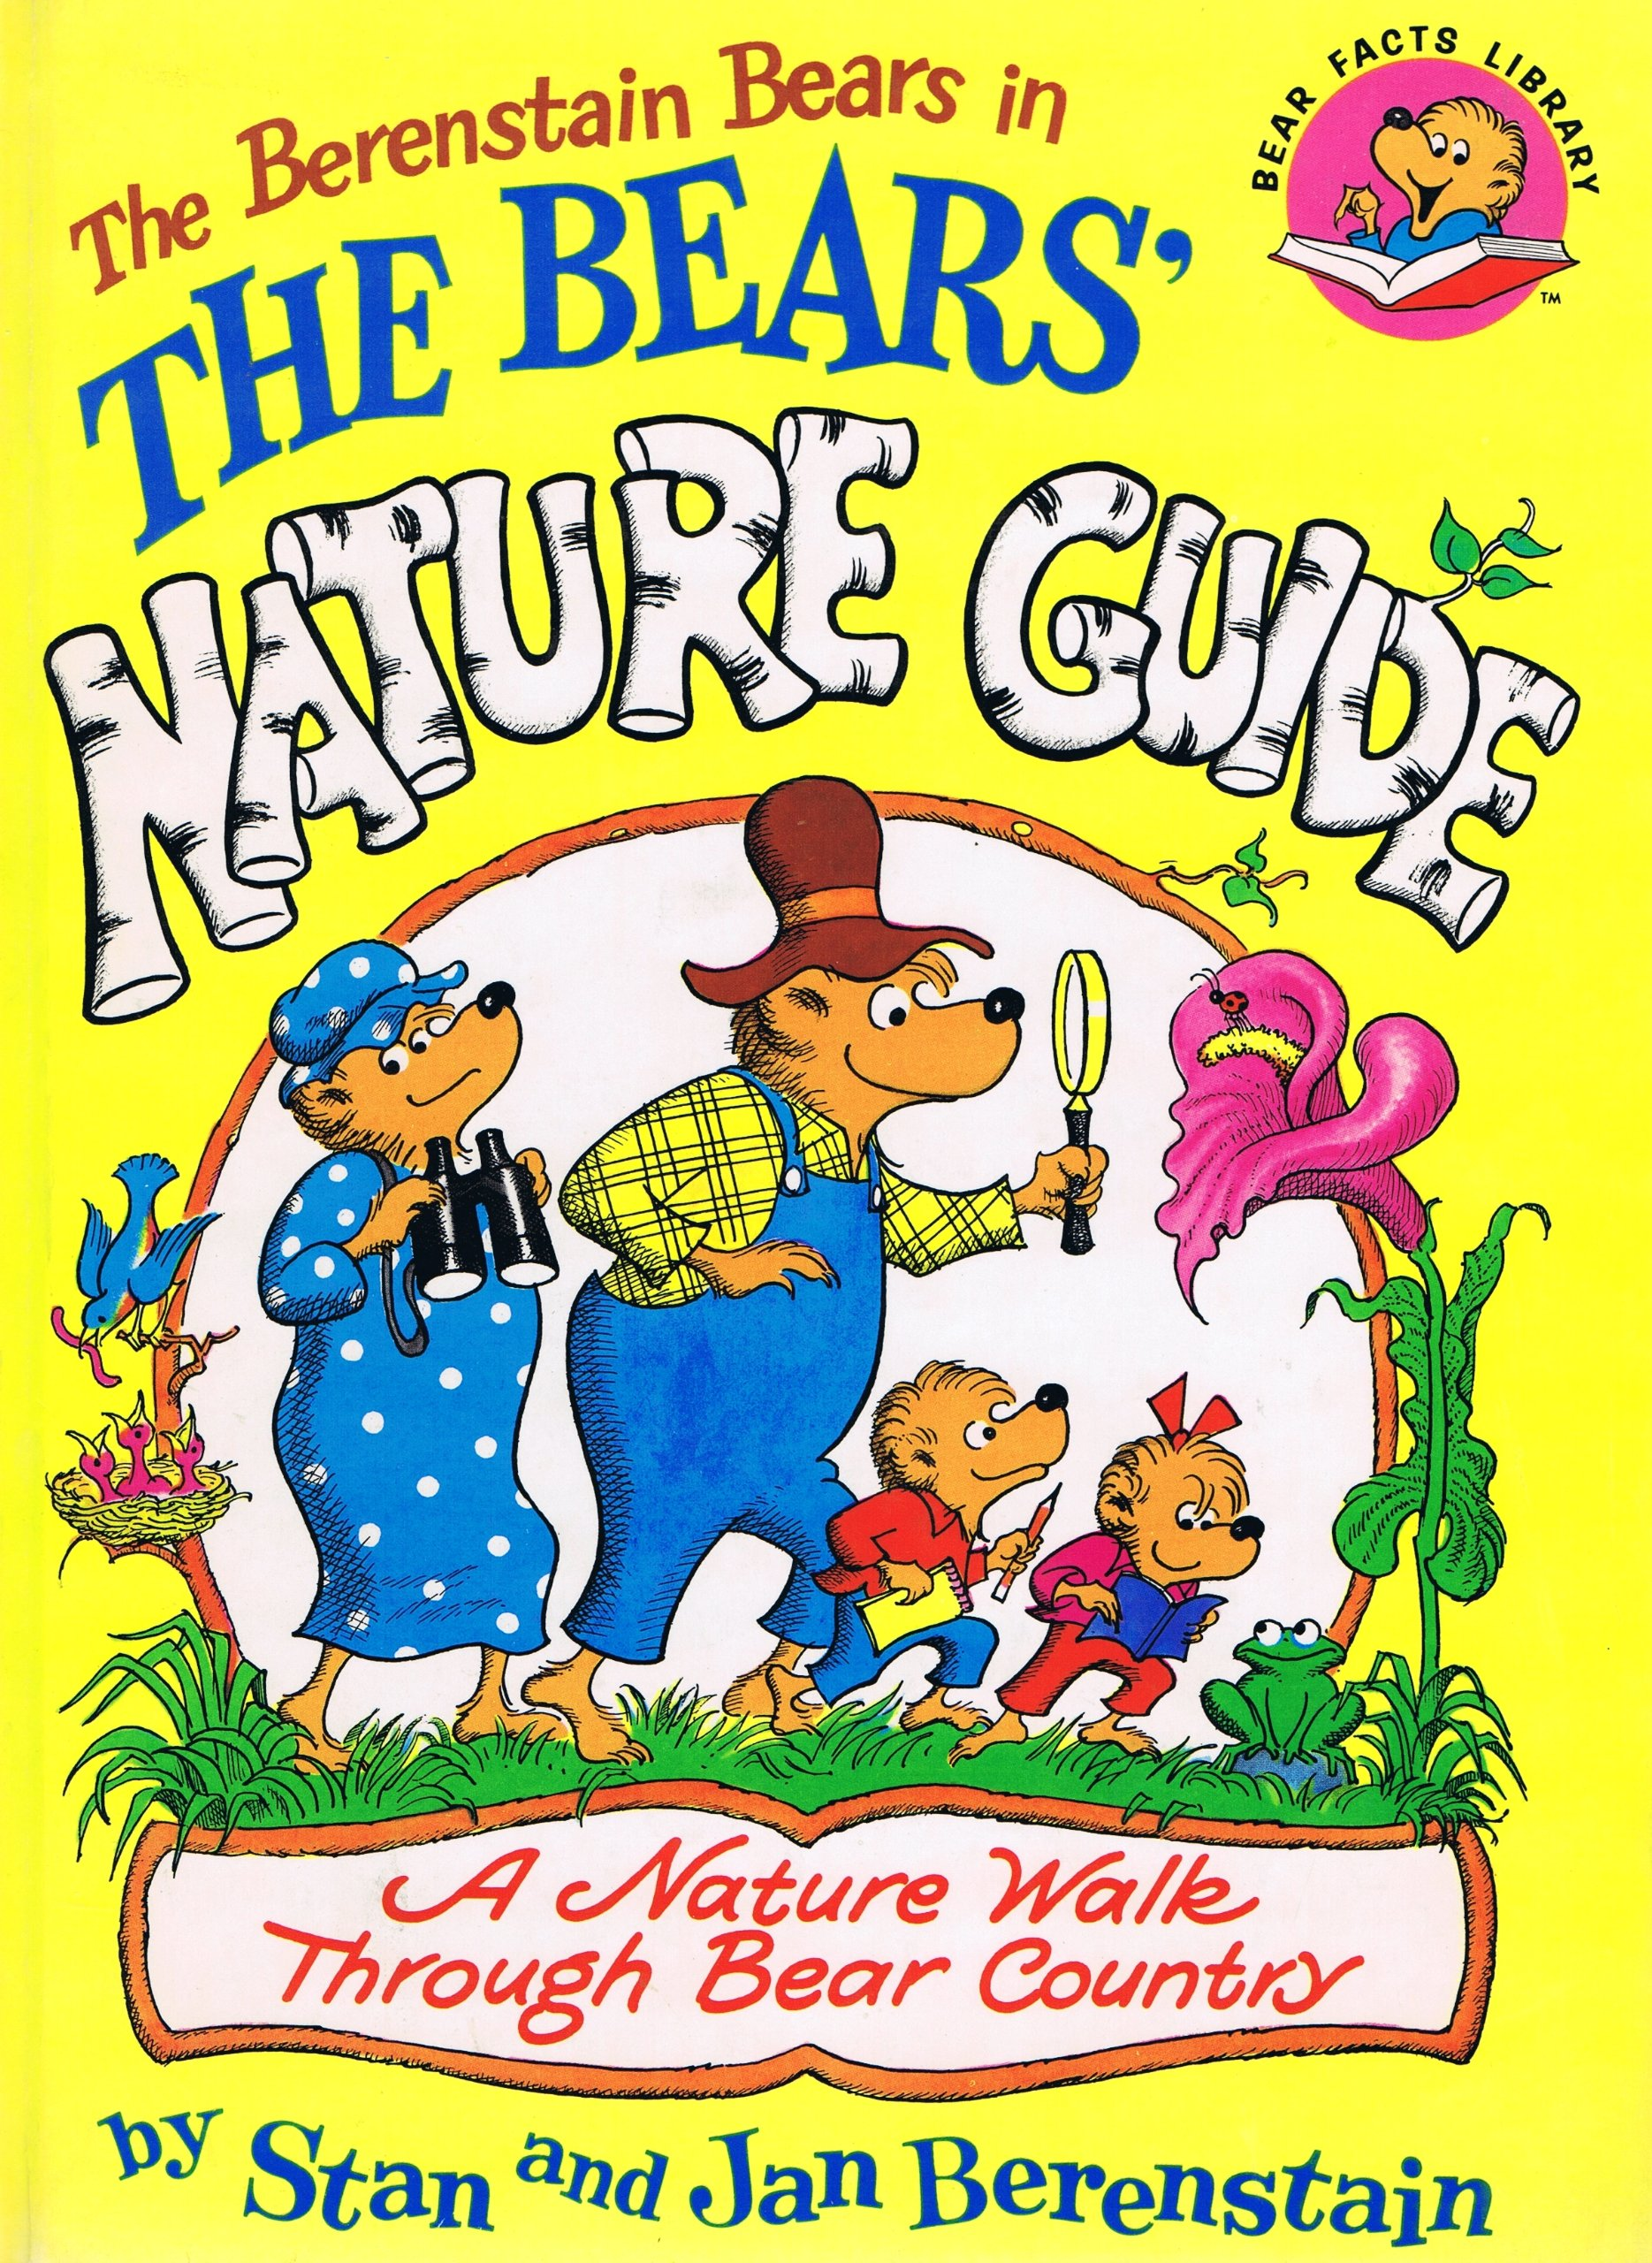 The Berenstain Bears Nature Guide